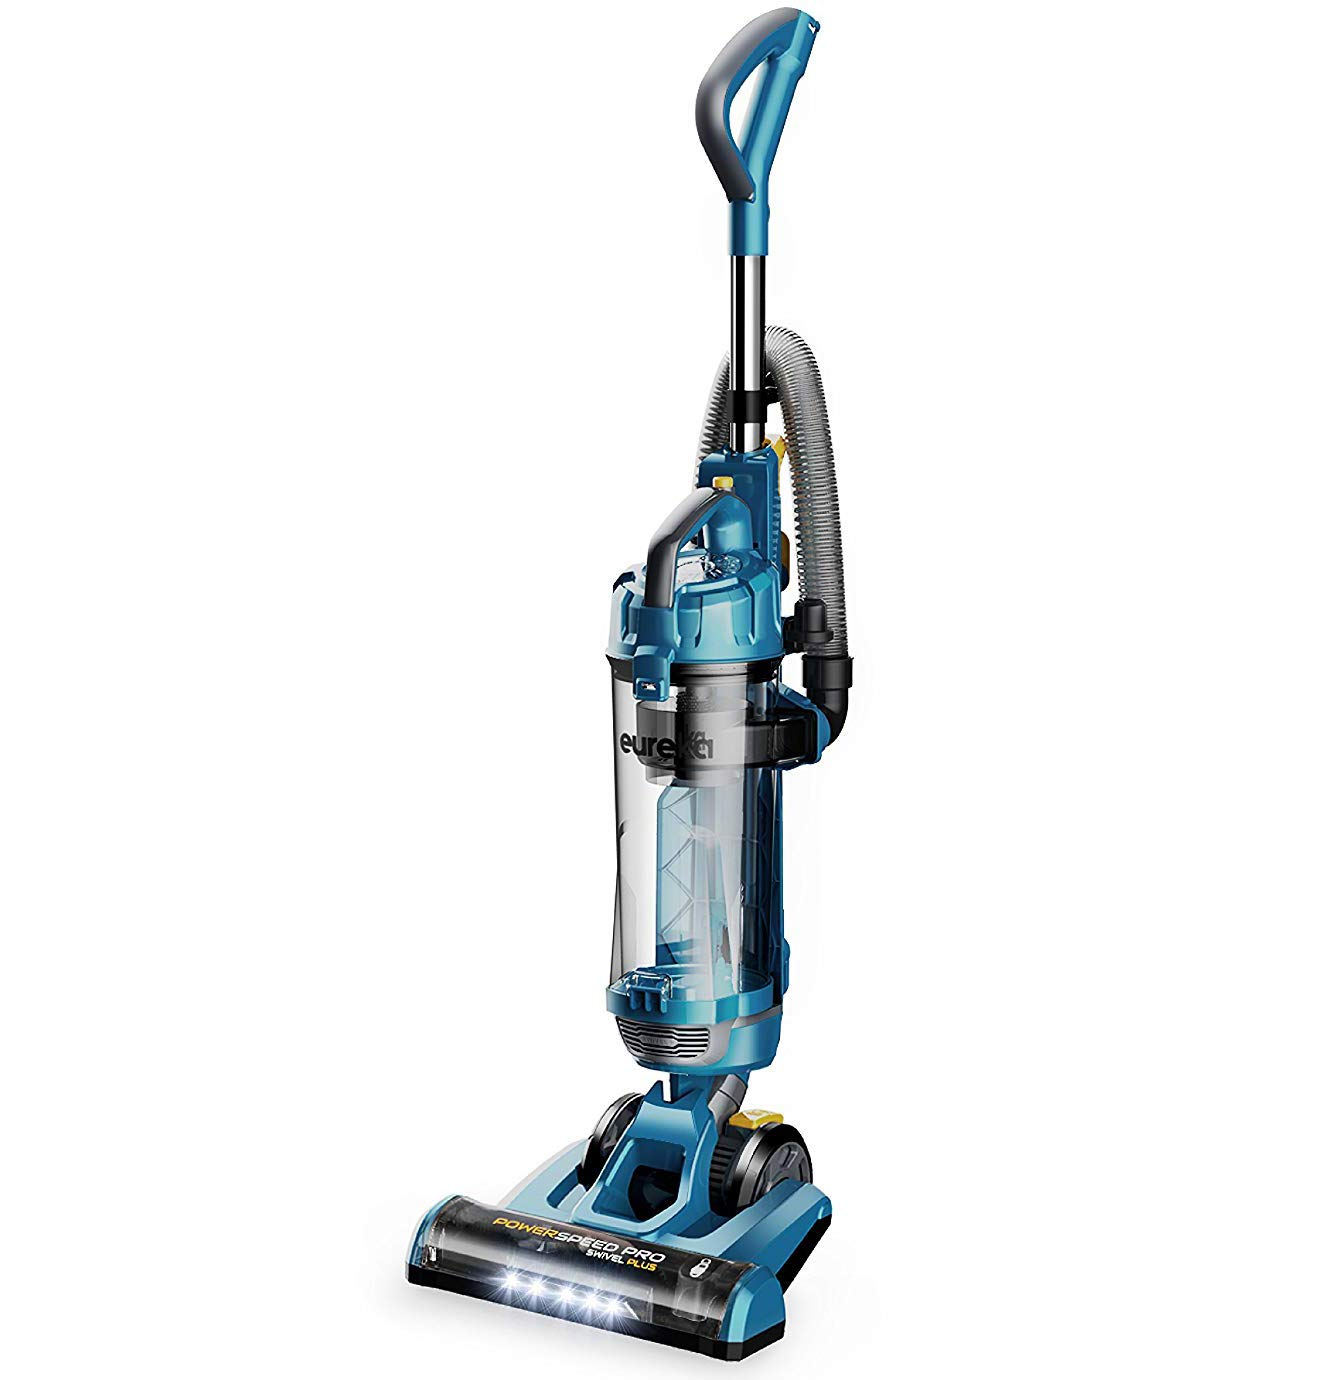 Eureka PowerSpeed Pro Turbo Spotlight with Swivel Plus Lightweight Upright Vacuum Cleaner, NEU192A